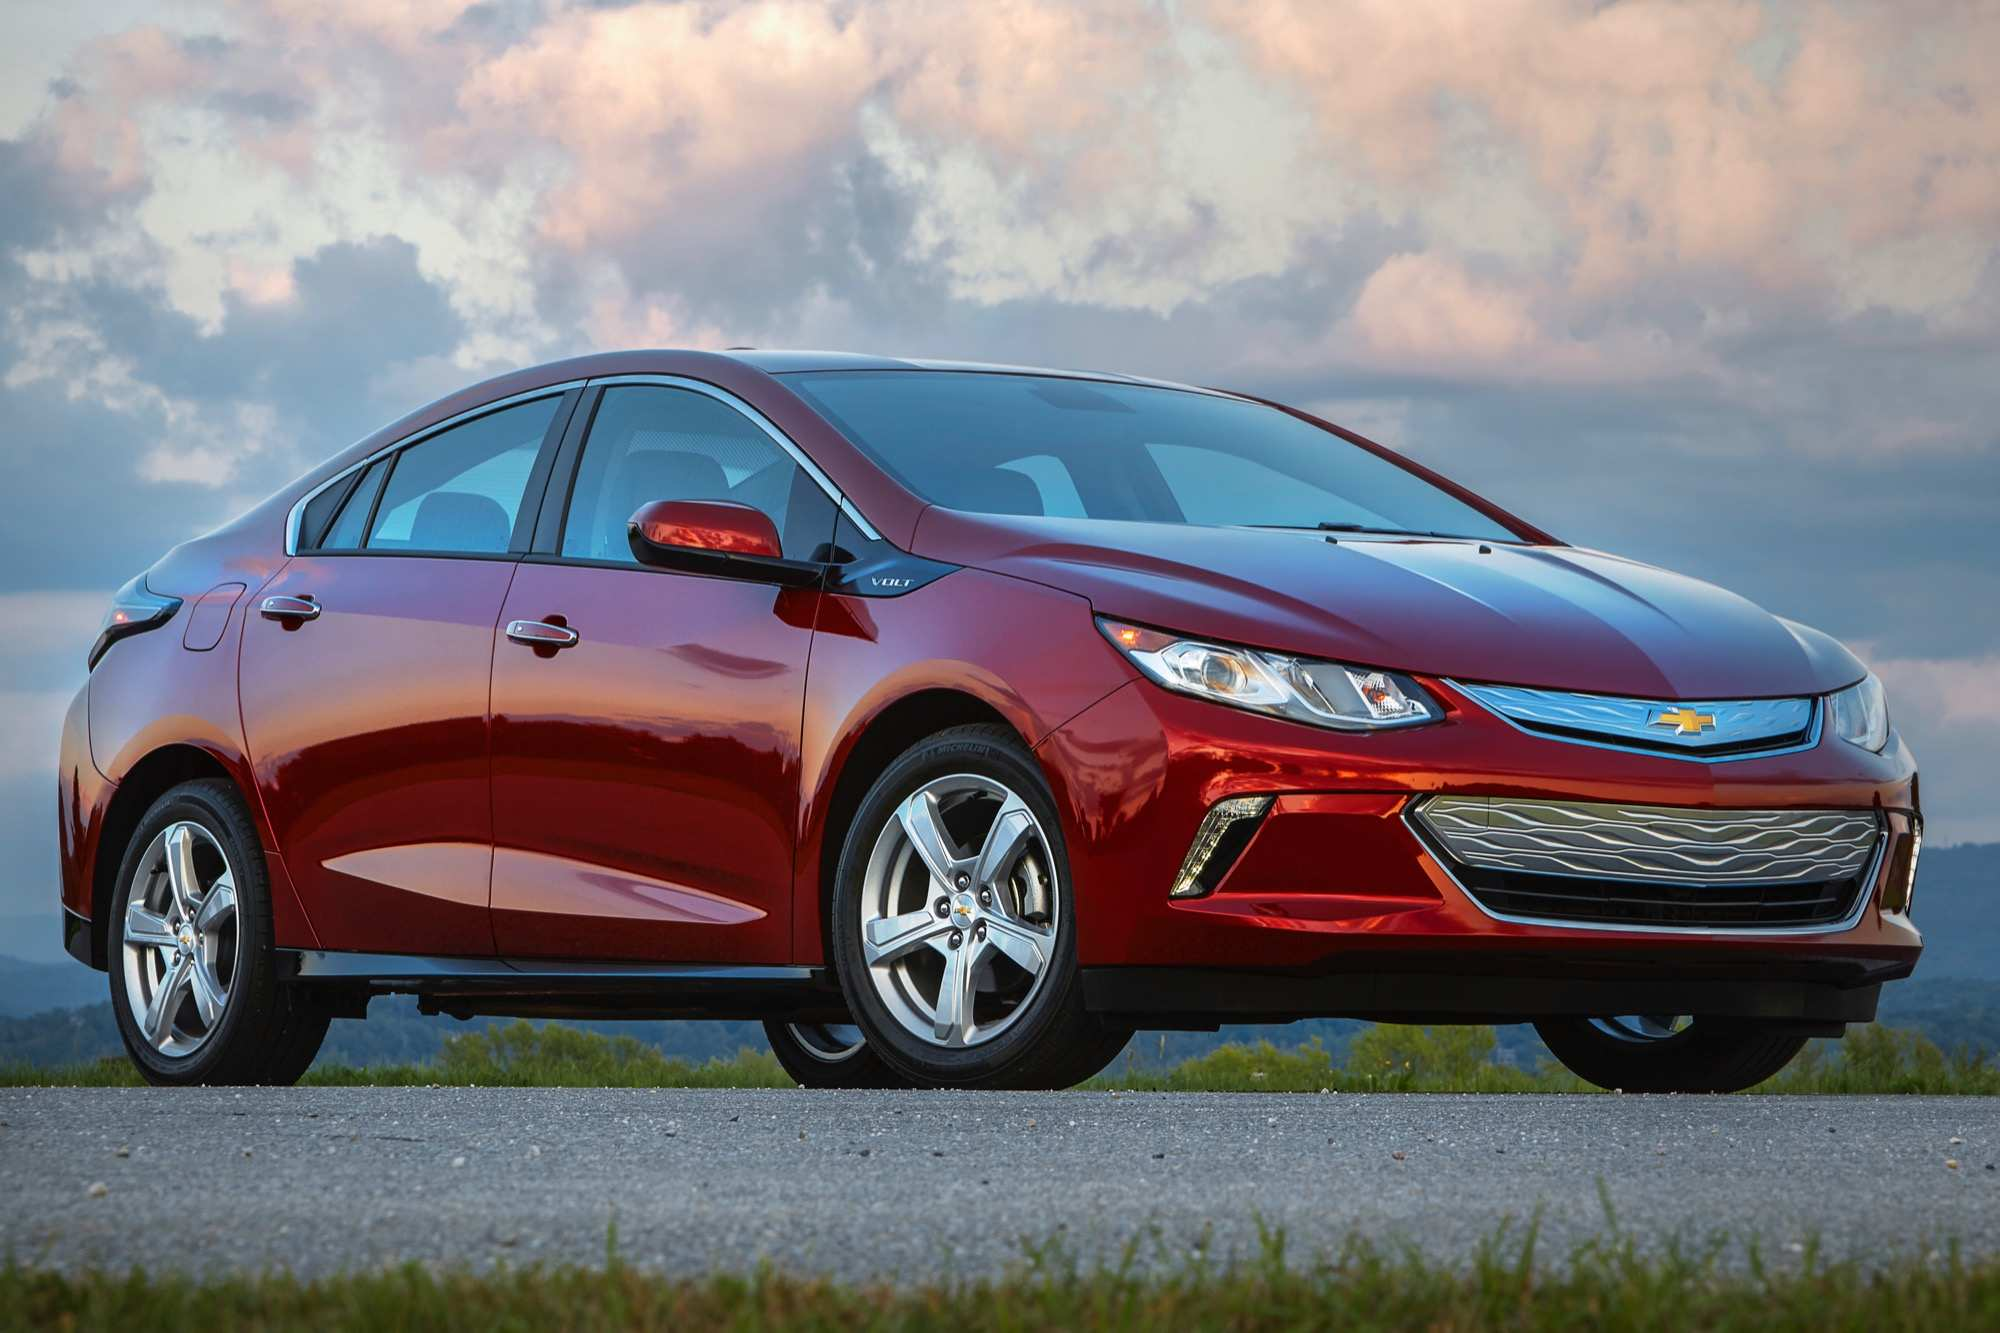 70 New The Chevrolet Volt 2019 Price Overview And Price Photos by The Chevrolet Volt 2019 Price Overview And Price